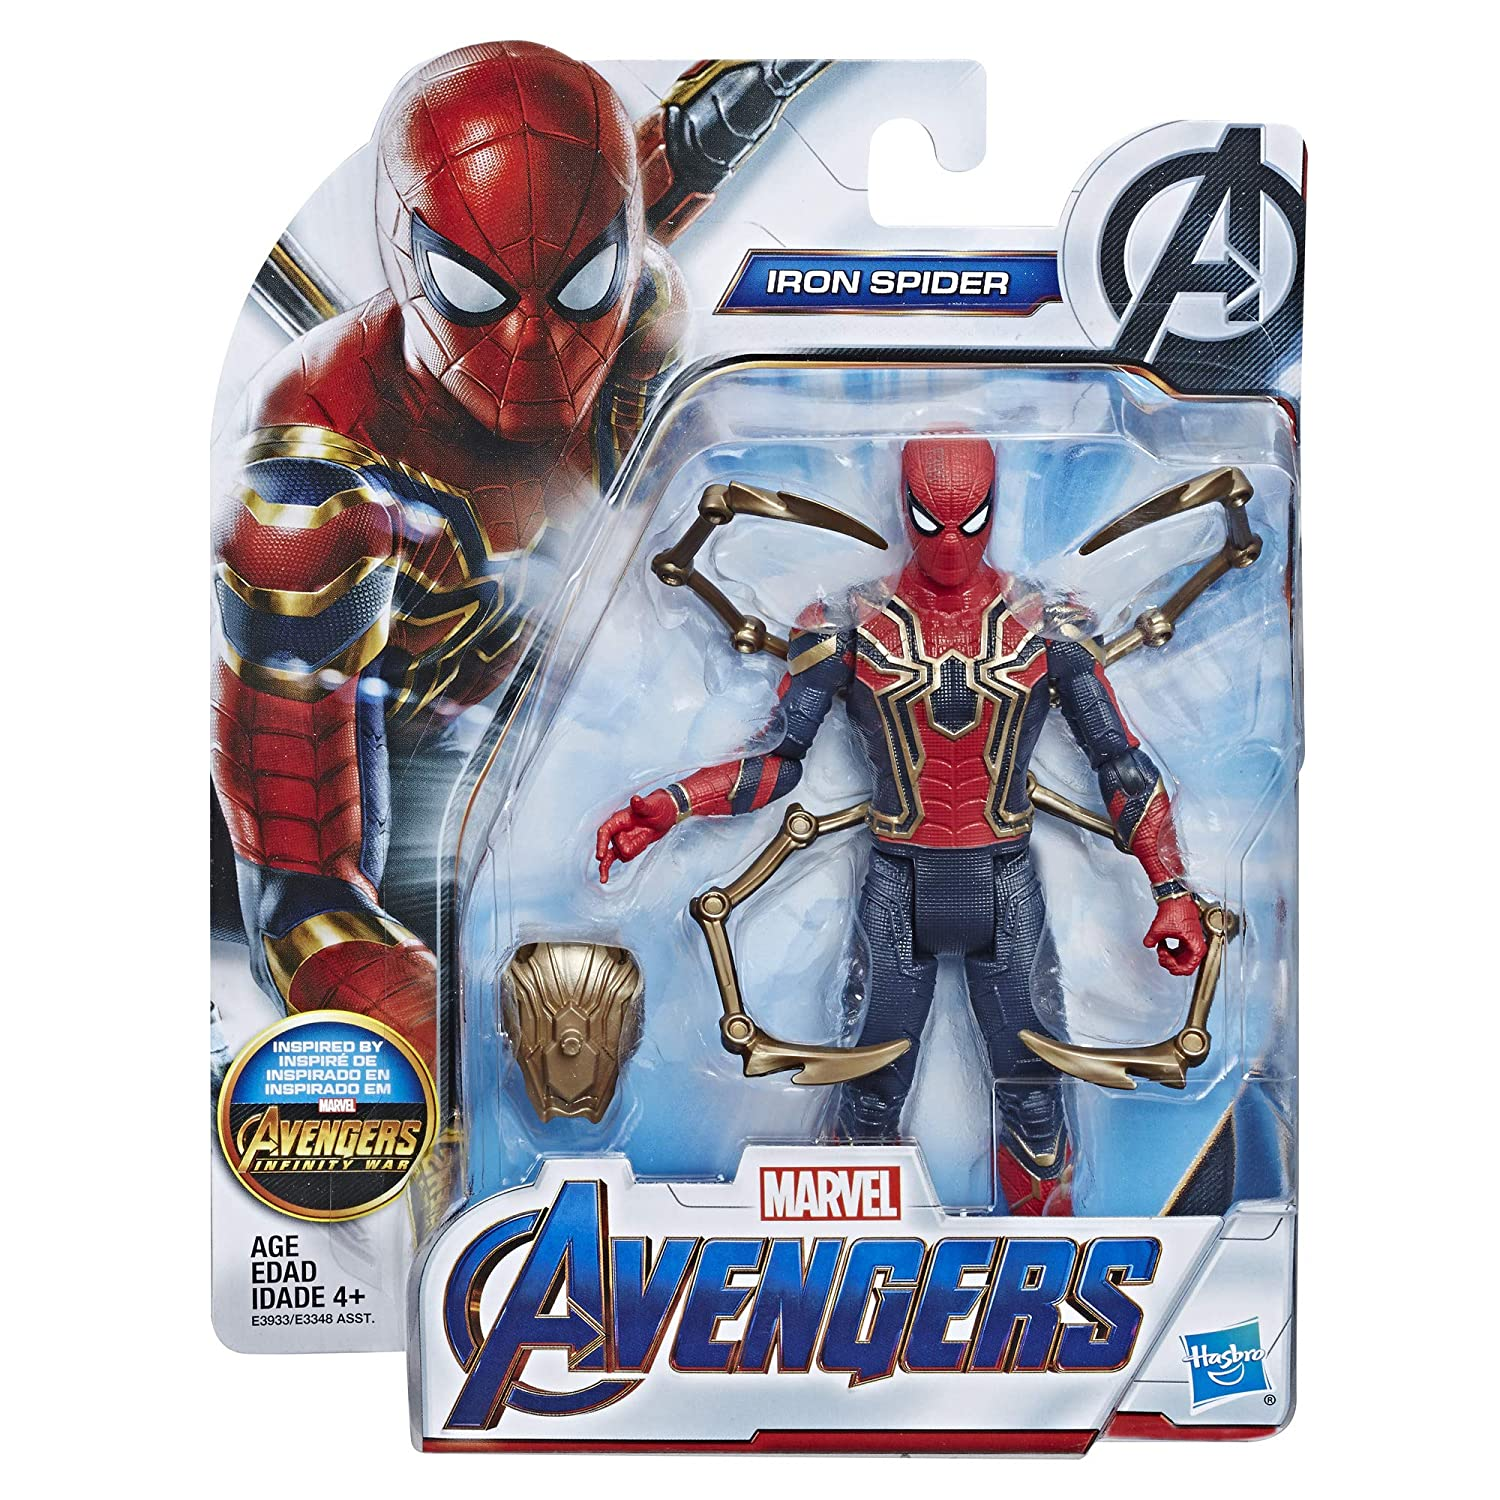 Avengers Marvel Iron Spider 6-Inch-Scale Marvel Super Hero Action Figure Toy